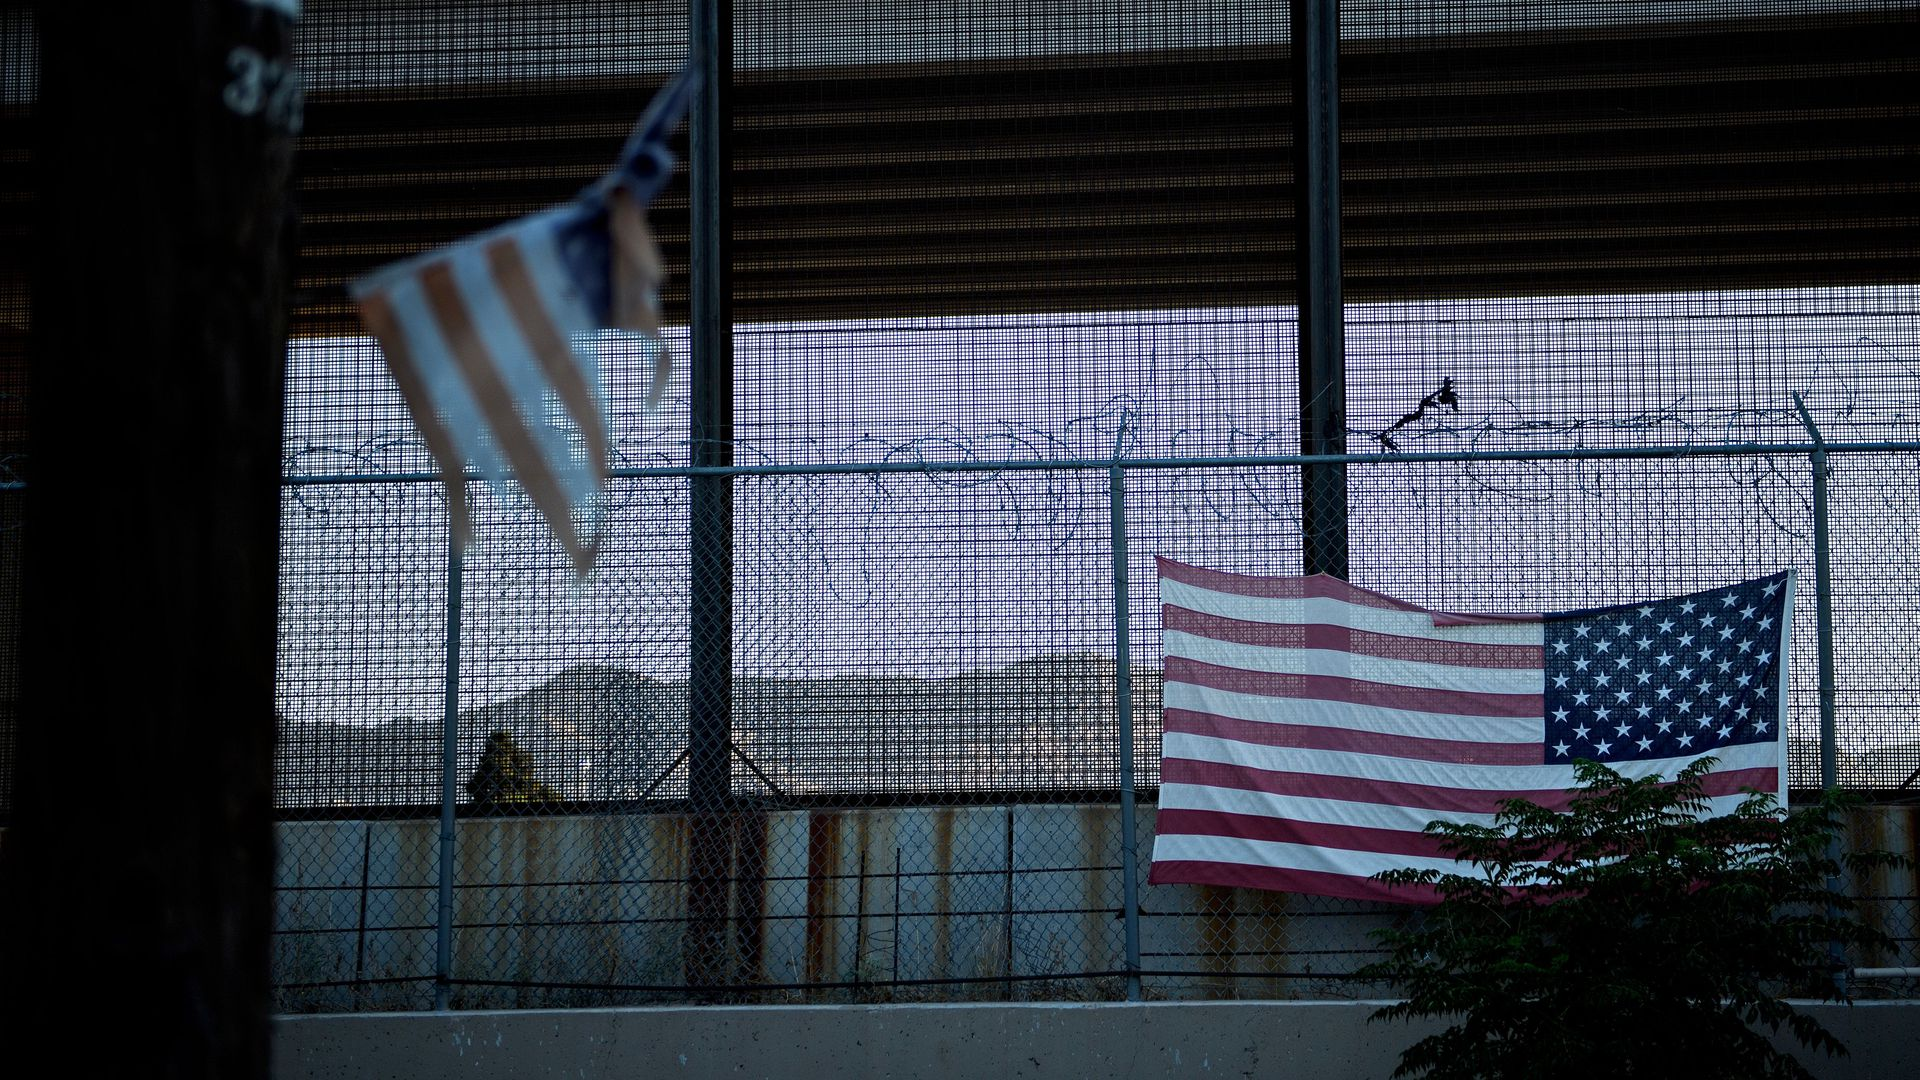 A U.S. flag hanging on a chain-link fence.